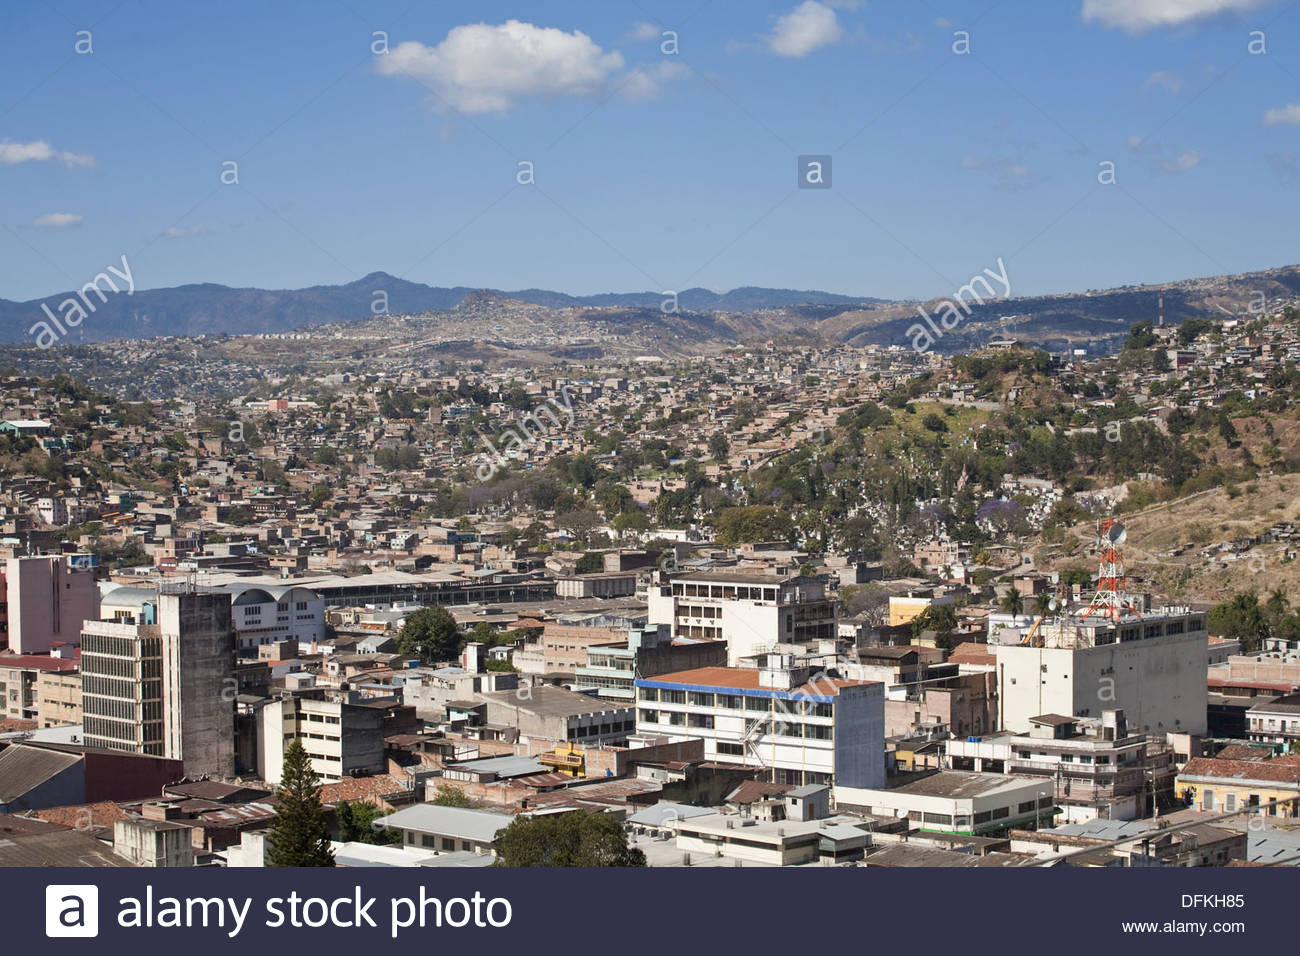 Parque La Leona Tegucigalpa, View of city from Parque La Leona, Tegucigalpa, Honduras Stock ...